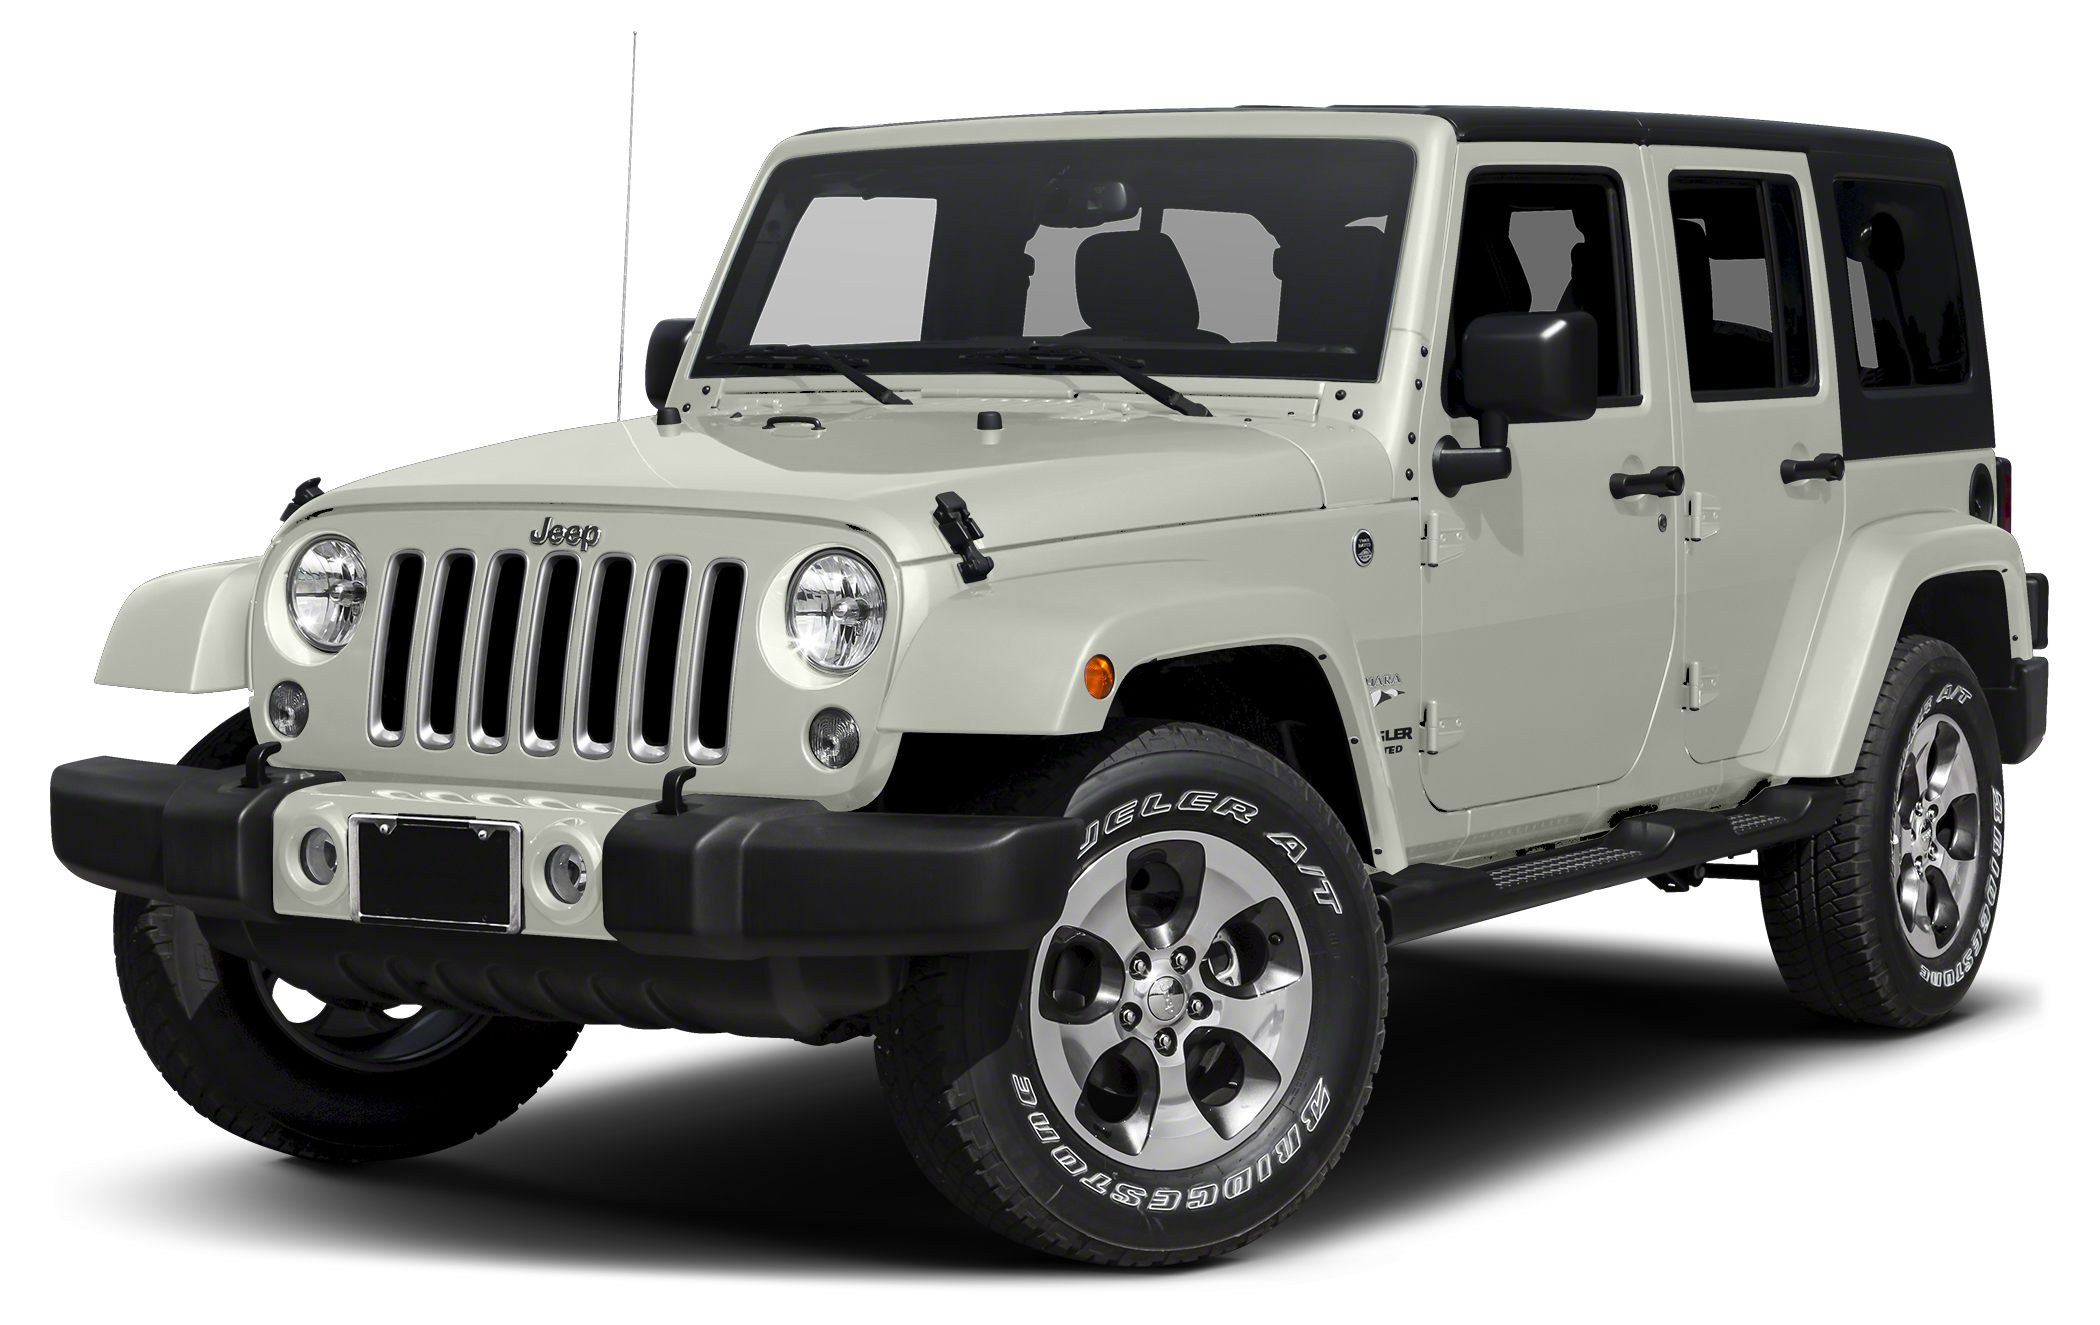 2015 Jeep Wrangler Unlimited Sahara UNLIMITED SAHARA LEATHER AND HEATED SEATS COLOR MATCHING 3 P